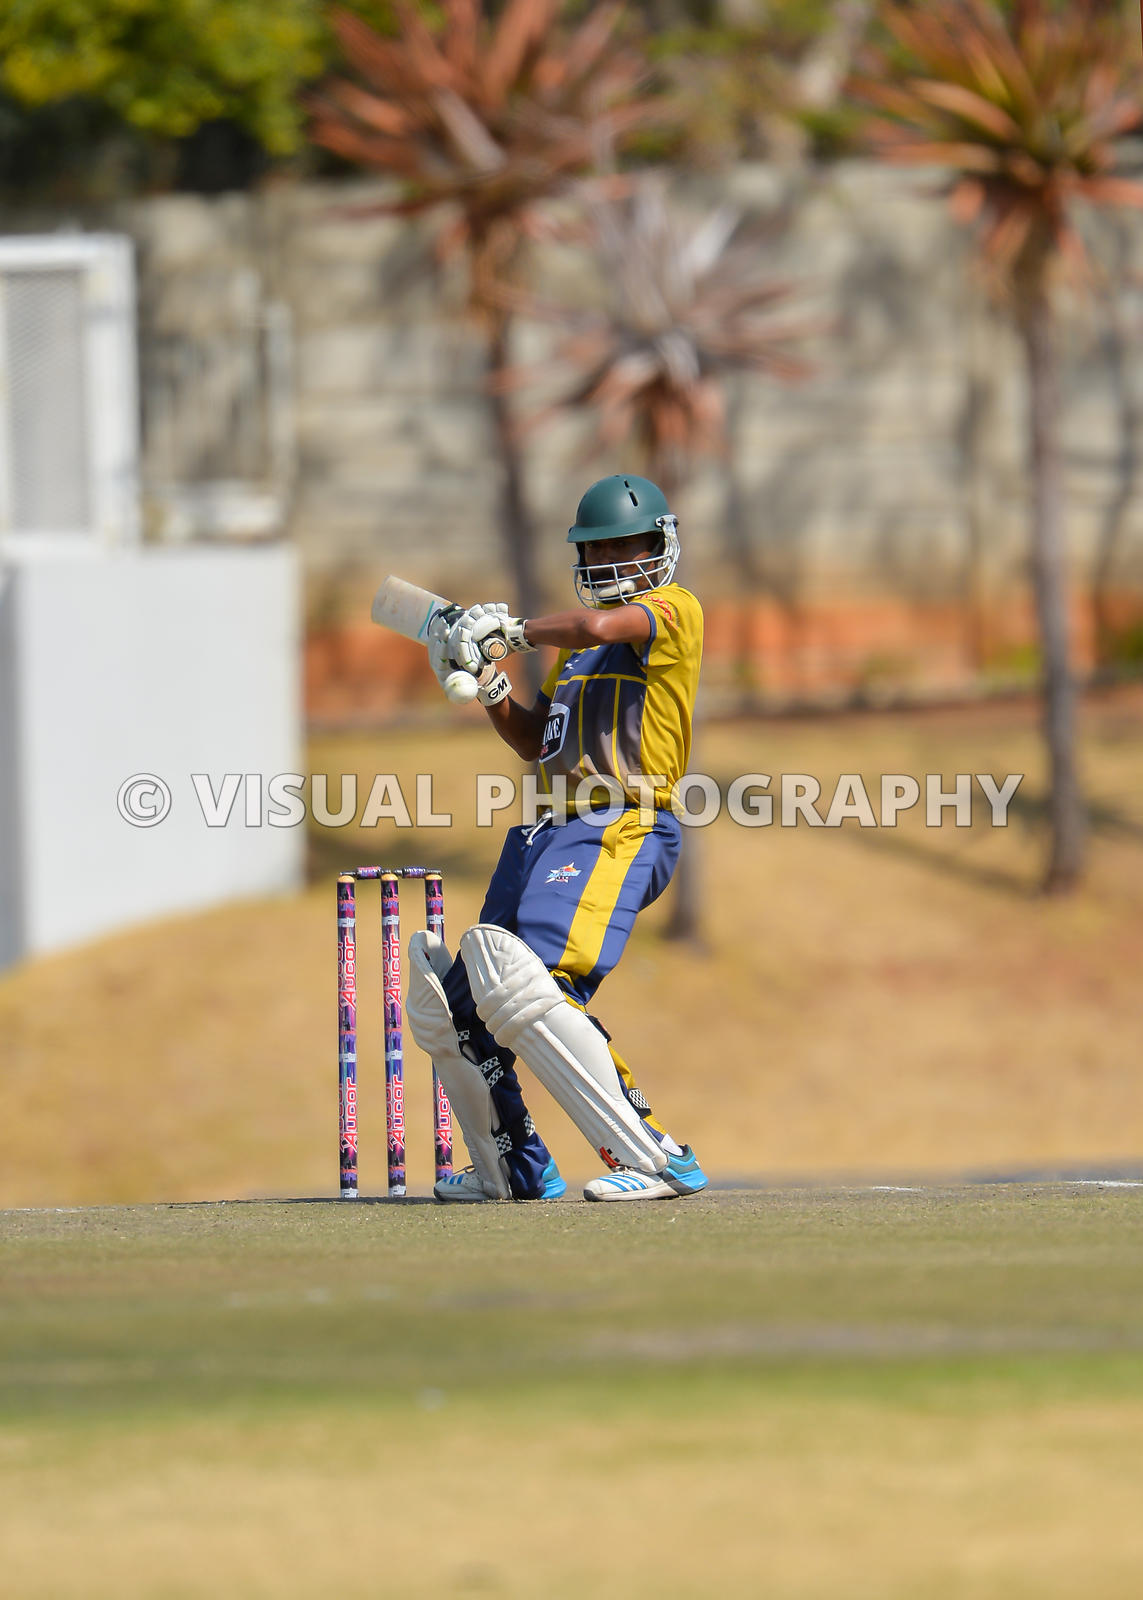 Cricket - 2018  day match (20-over match), Johannesburg - South Atrica - Bank  - Warriors